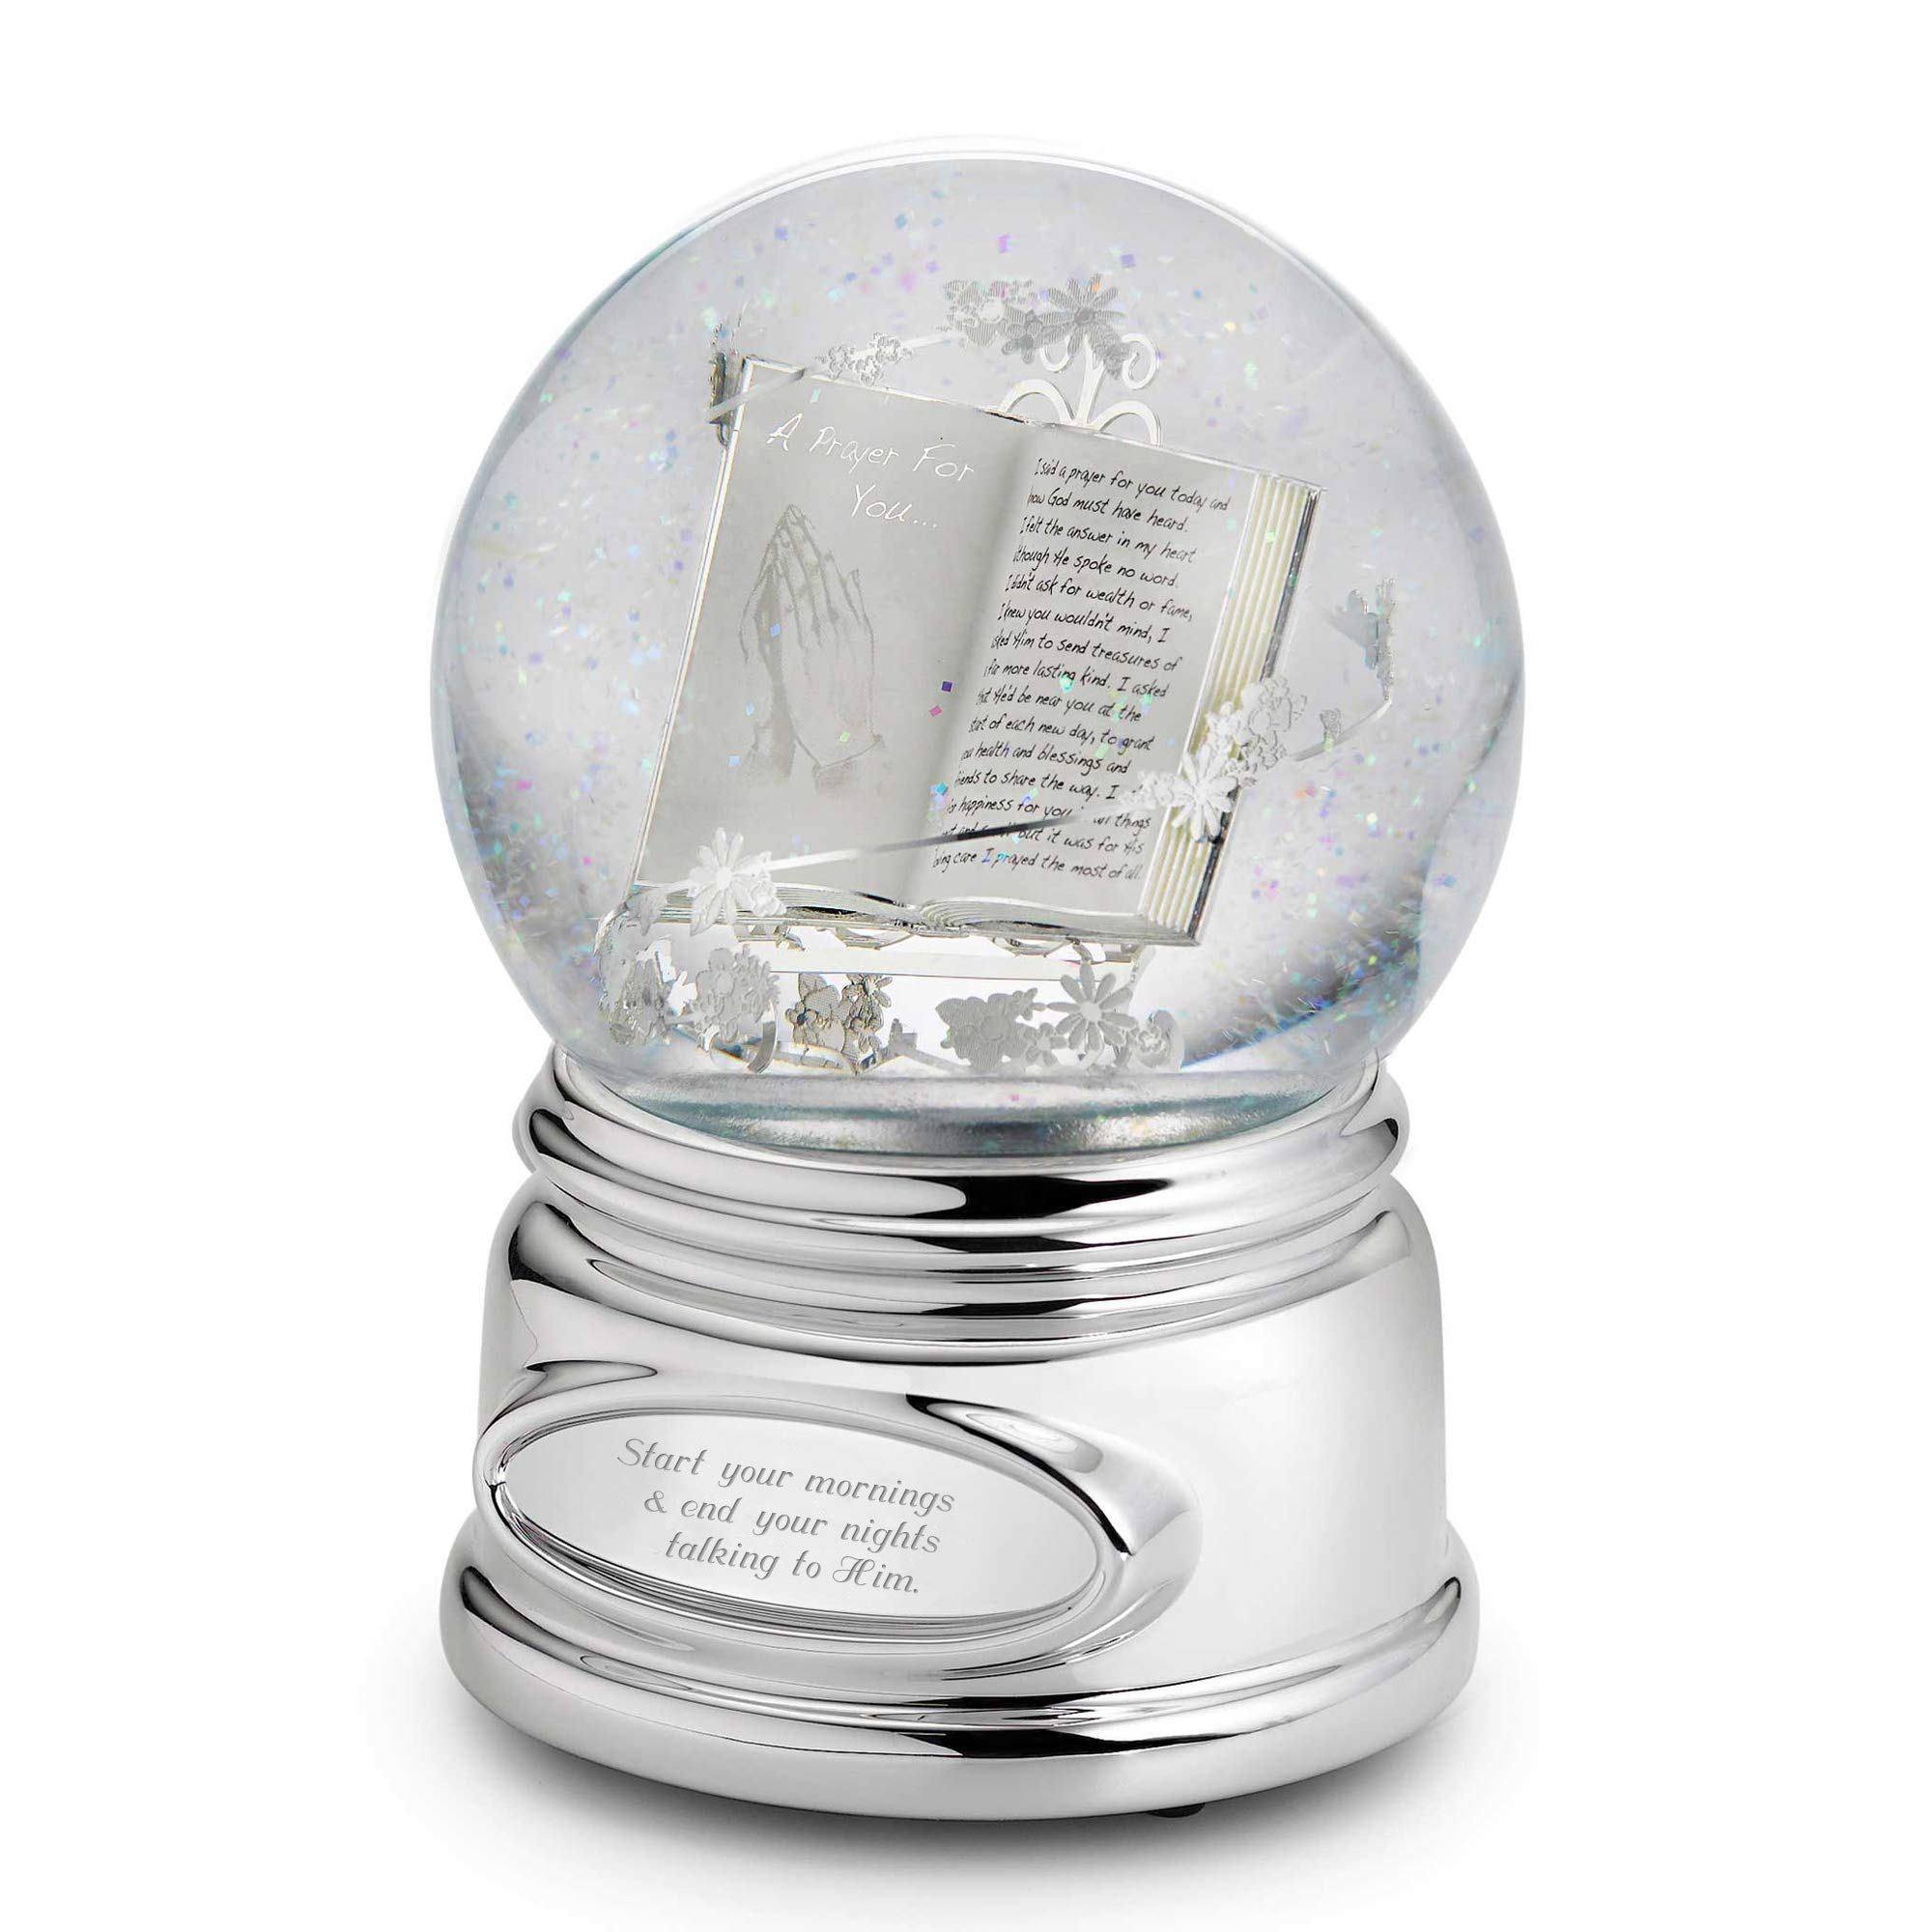 Things Remembered Personalized Praying Hands Musical Snow Globe with Engraving Included by Things Remembered